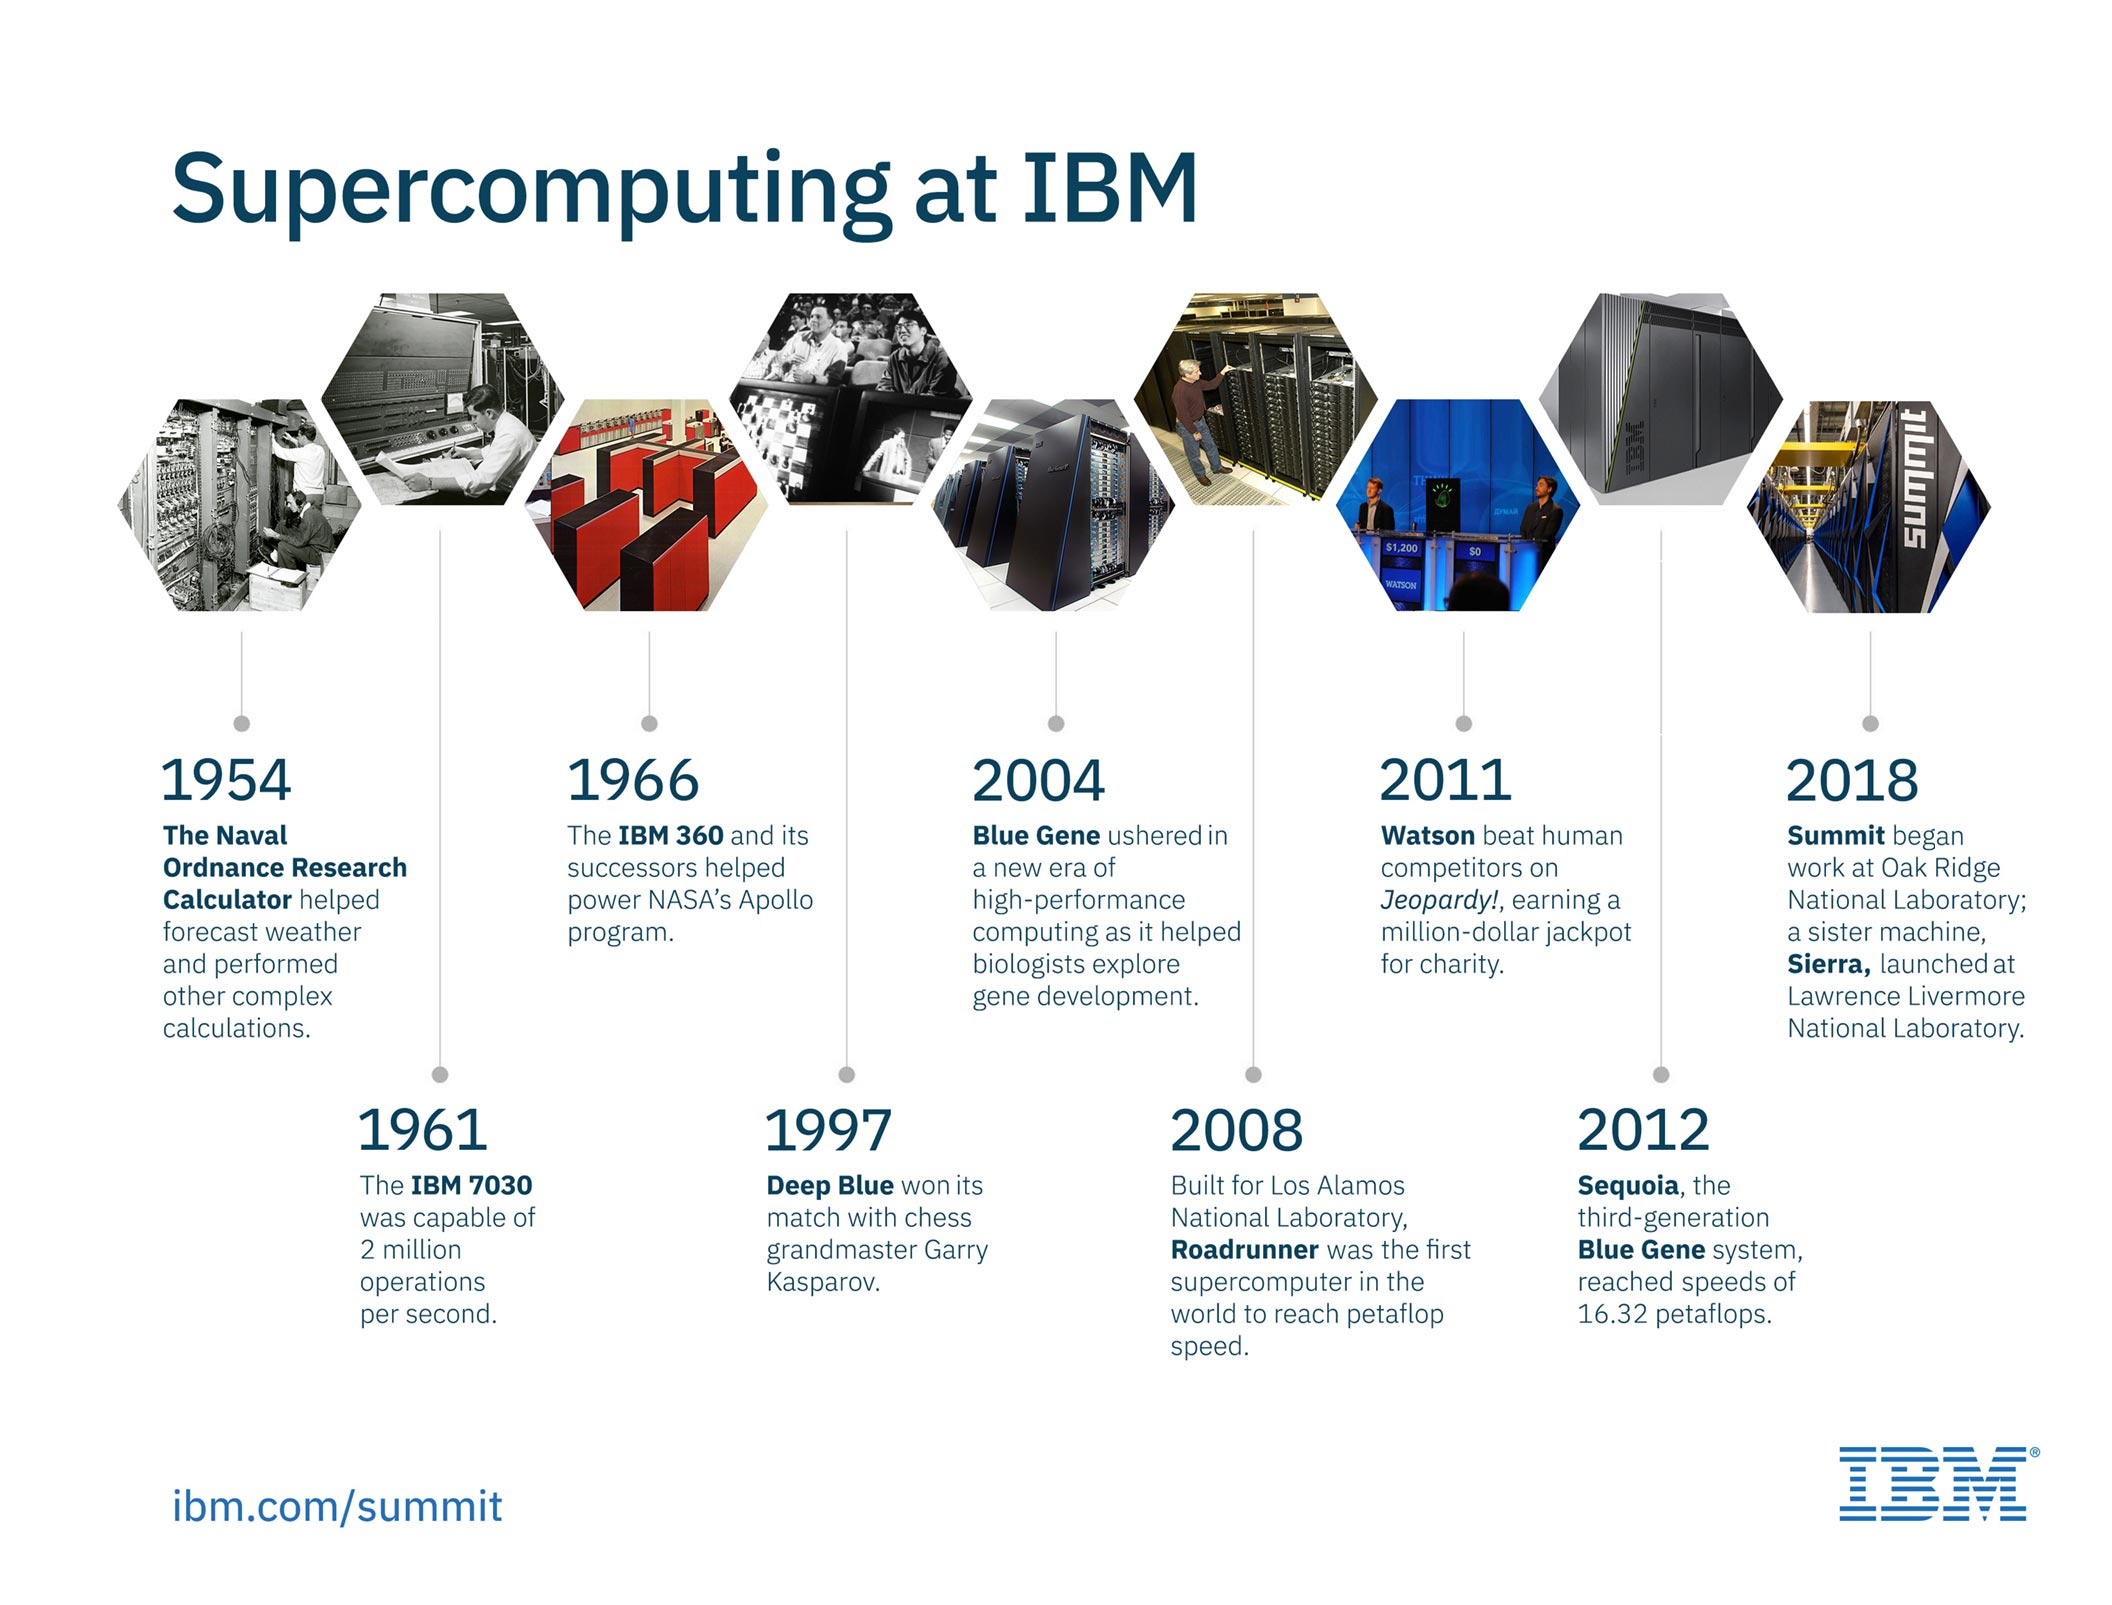 Supercomputing at IBM: A brief history